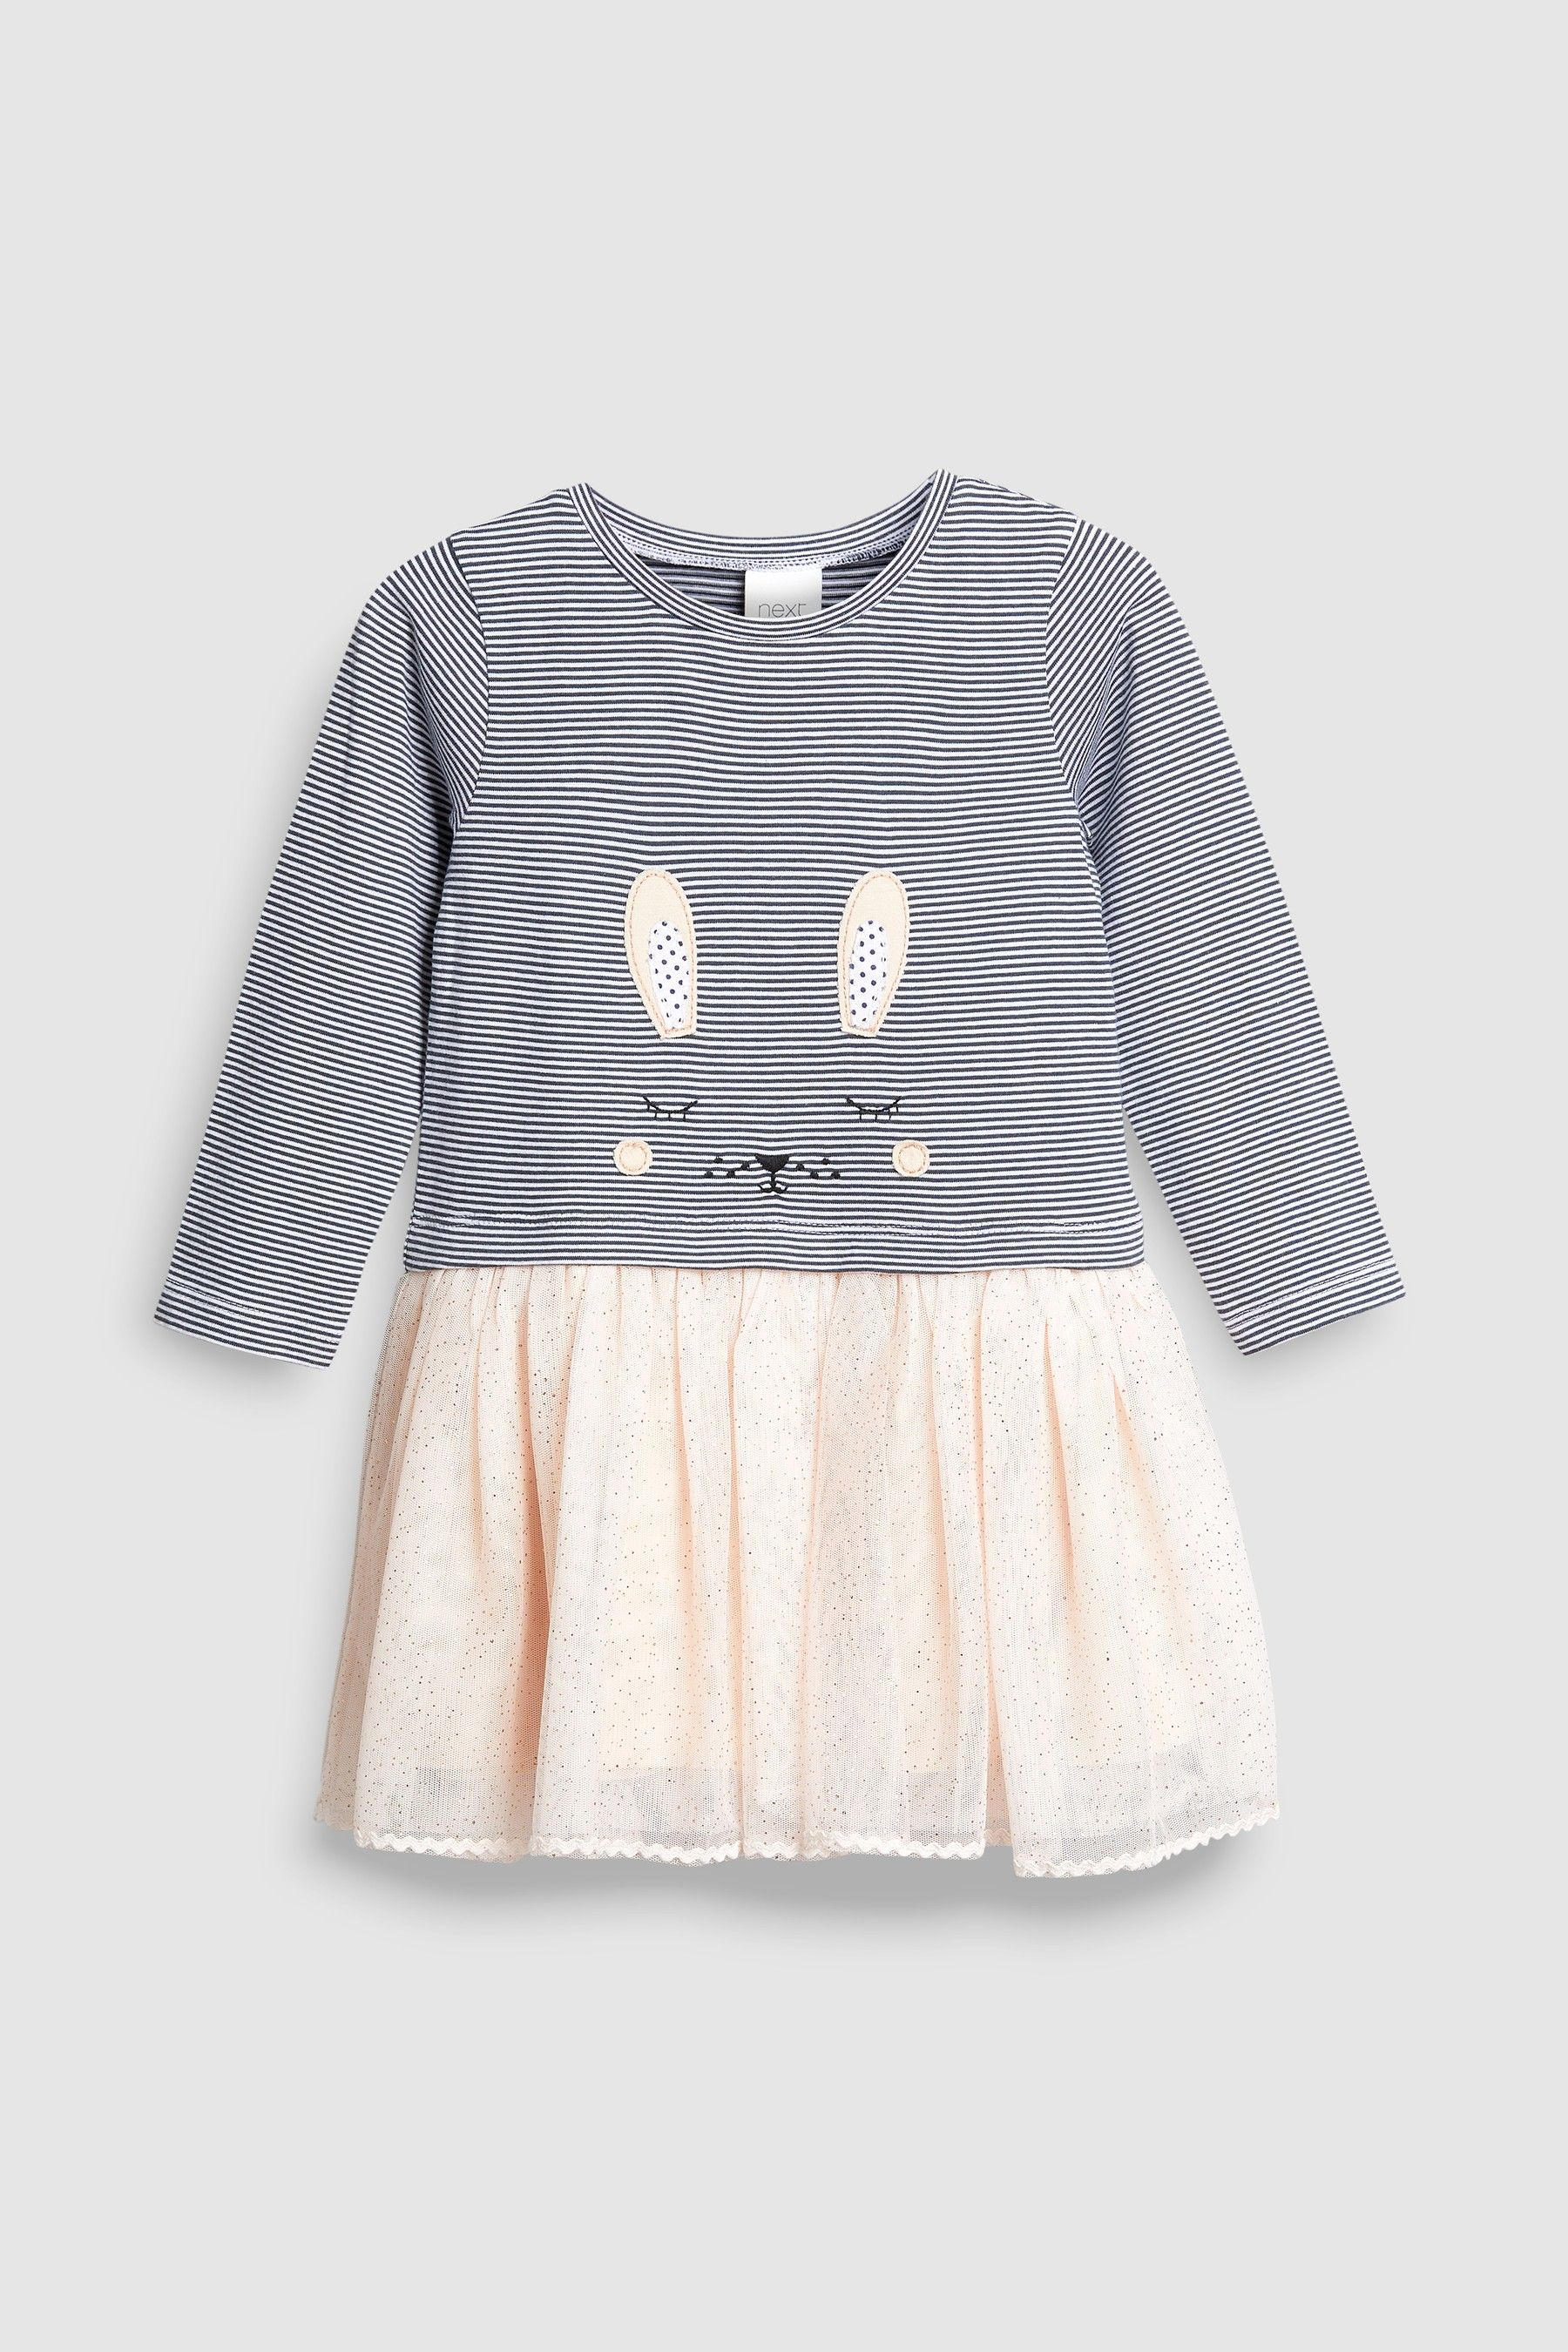 1538dd274 Girls Next Pale Pink Stripe Bunny Dress (3mths-6yrs) - Pink ...